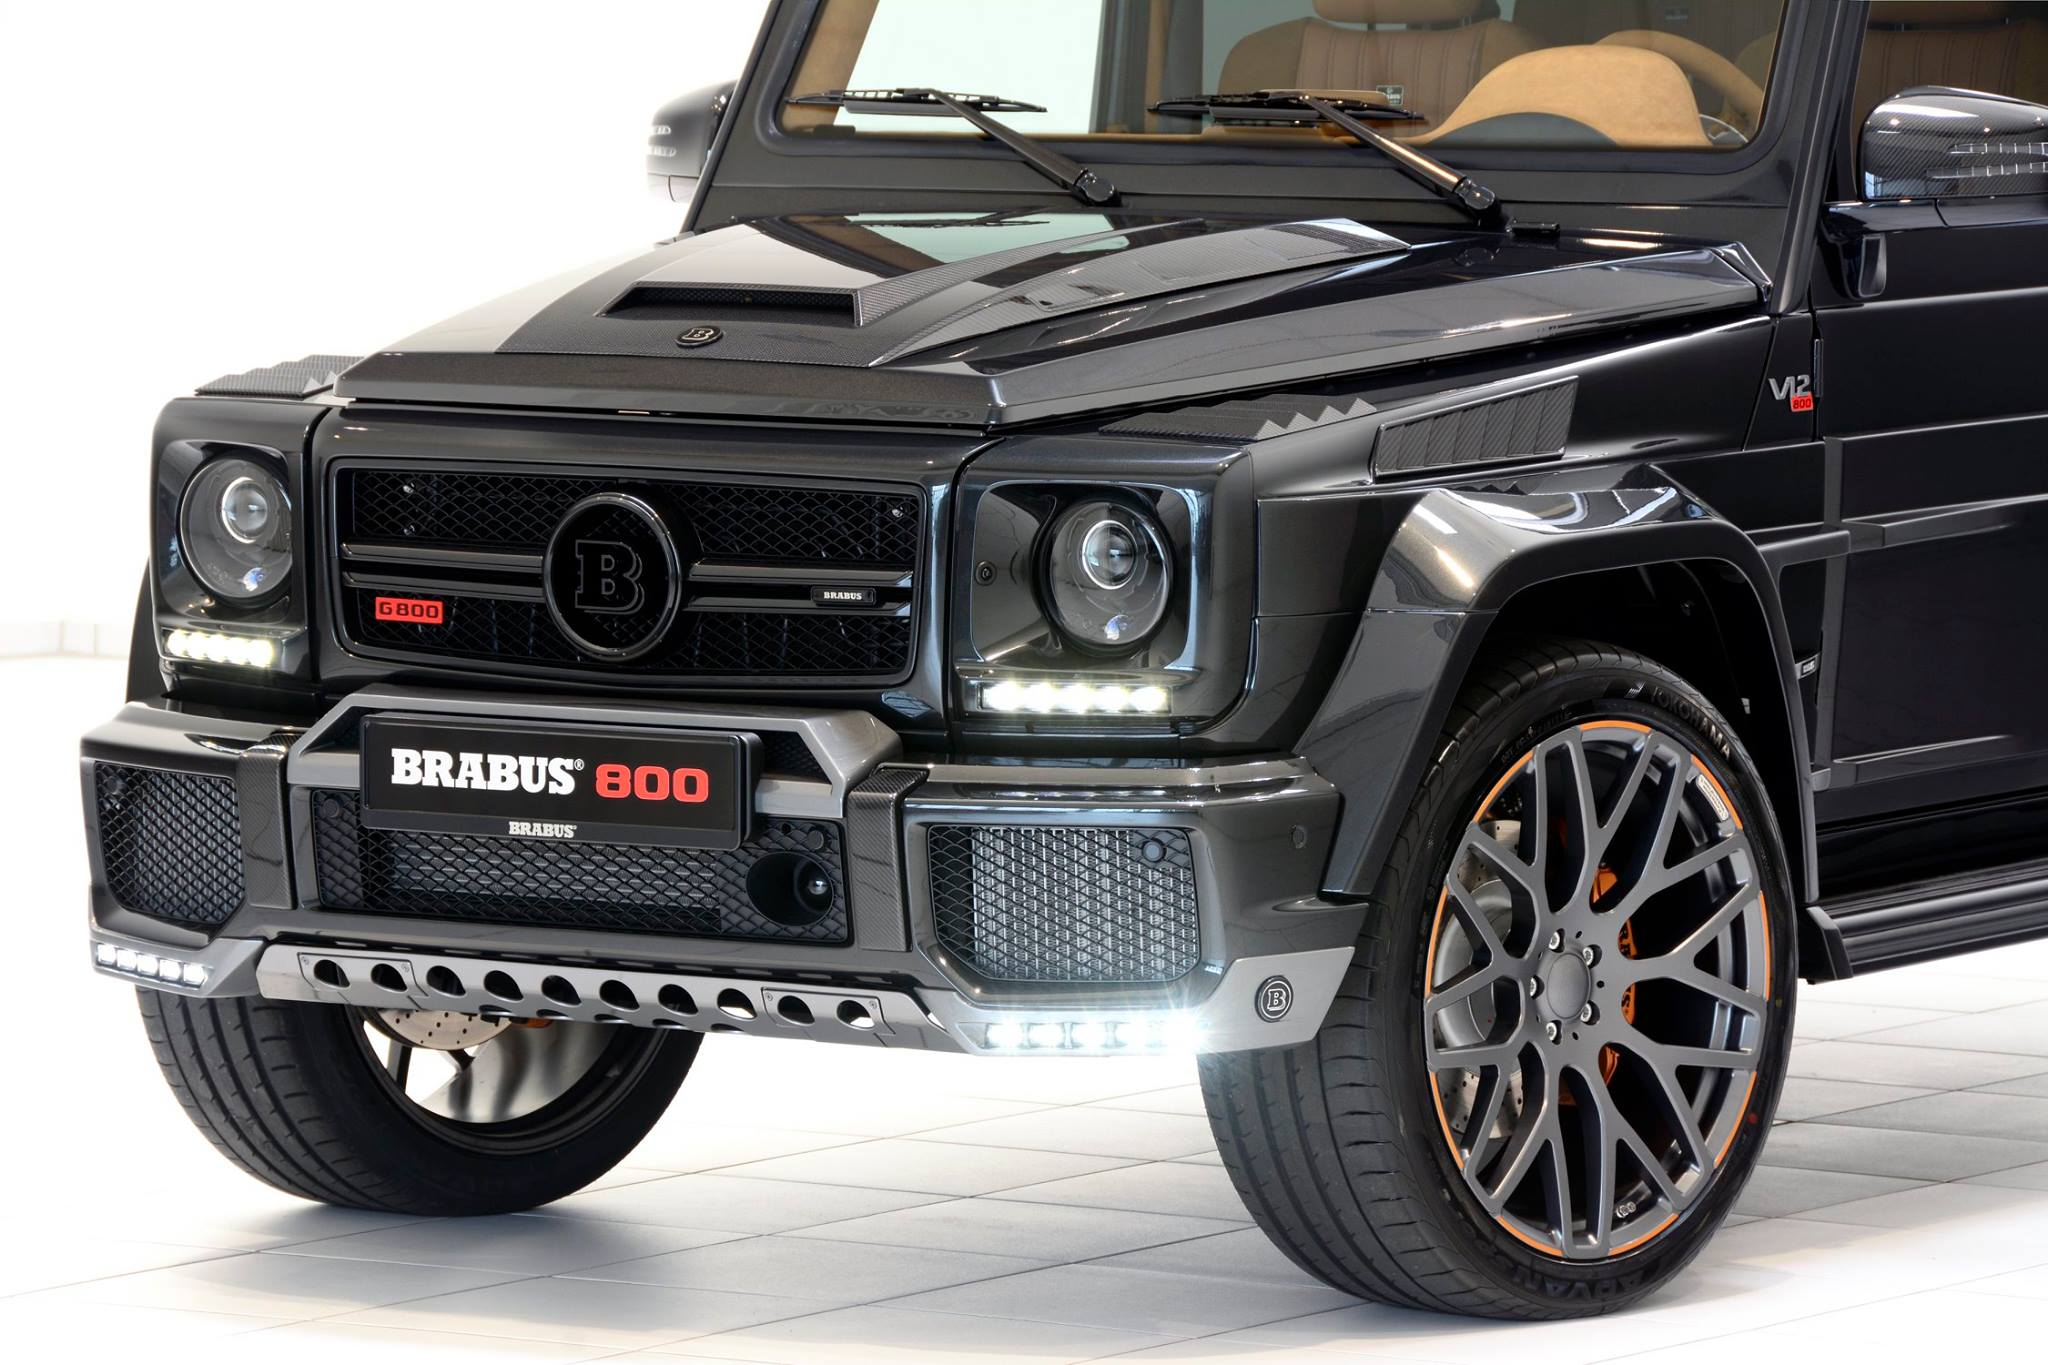 800 hp v12 brabus is based on mercedes amg g65 autoevolution for Mercedes benz g wagon v12